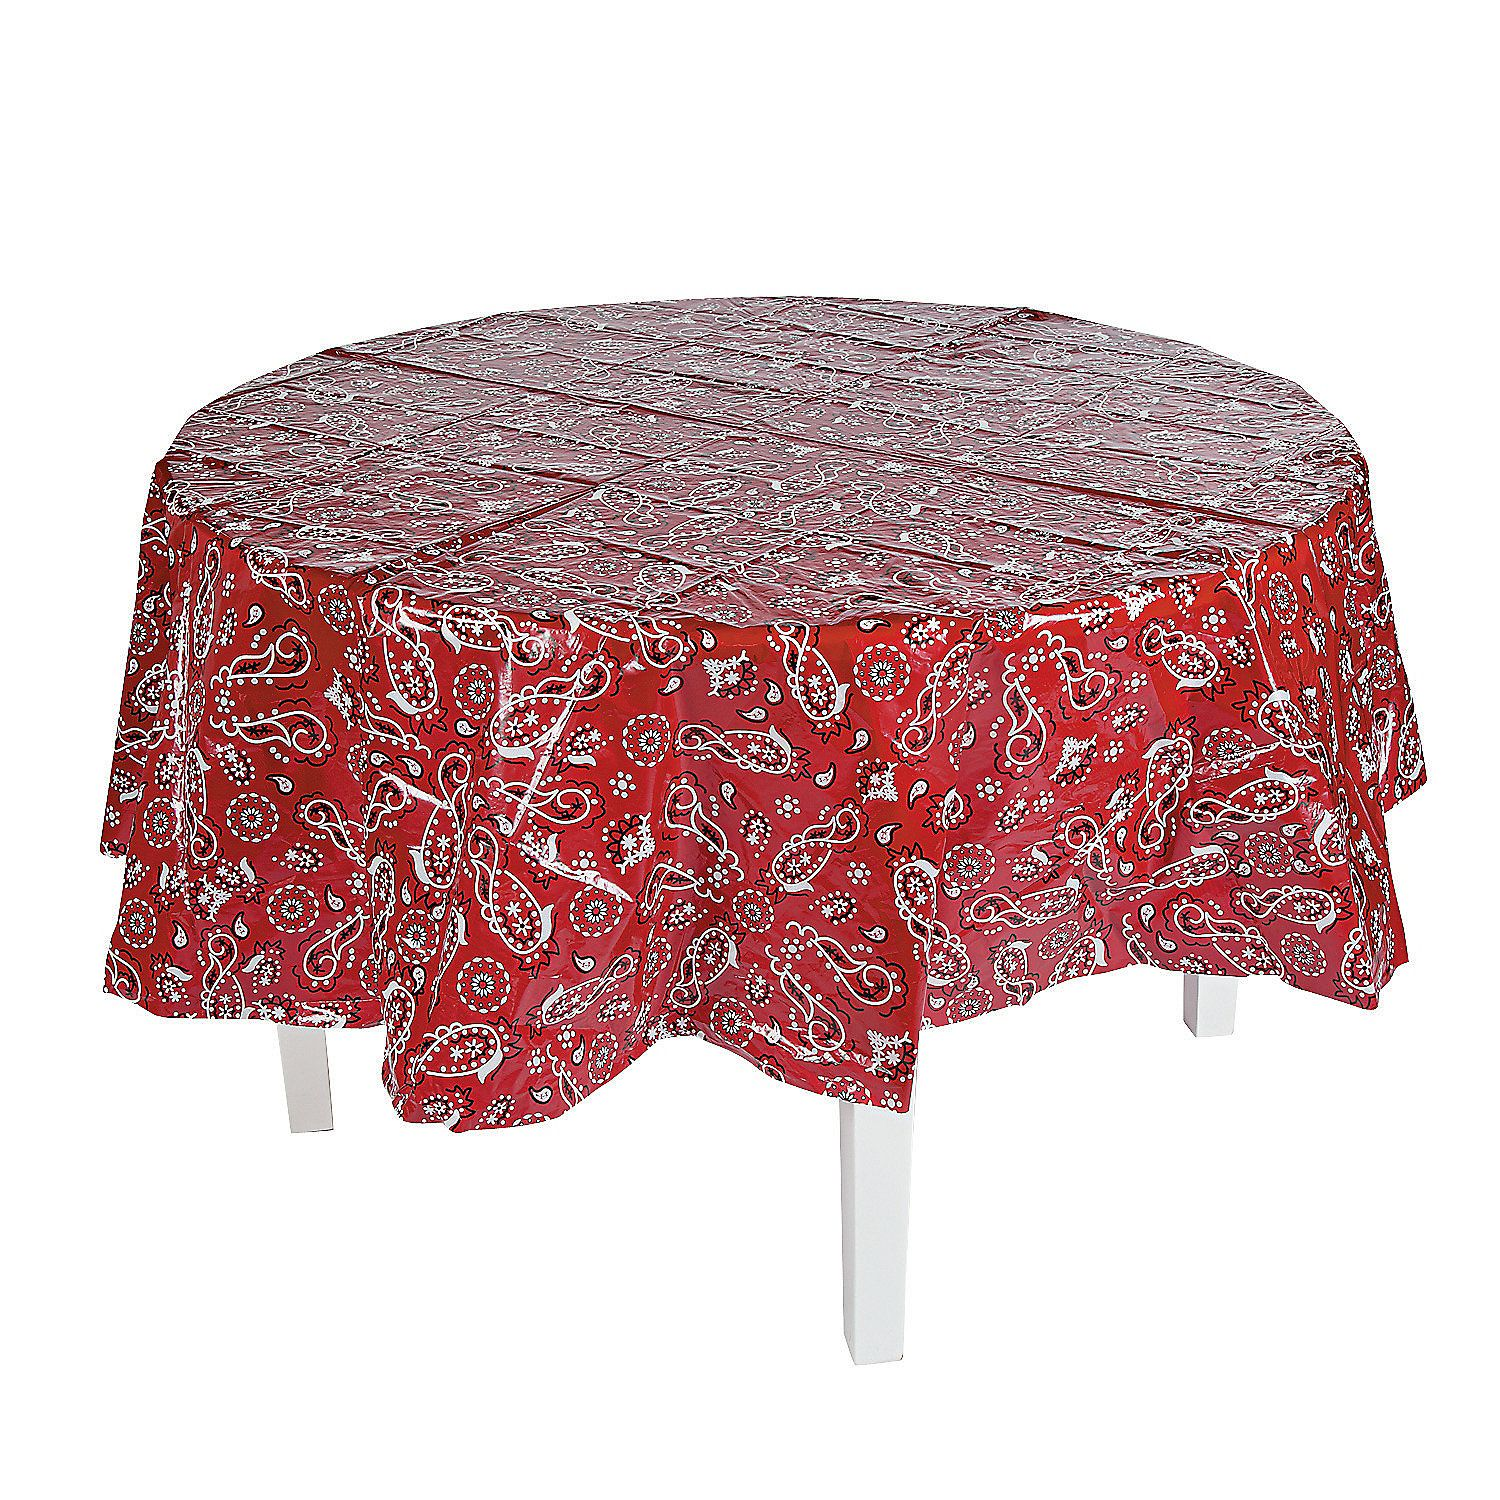 Merveilleux $3.99 Red Bandana Round Plastic Tablecloth | Cowboy Cowgirl Wester Party  Decor